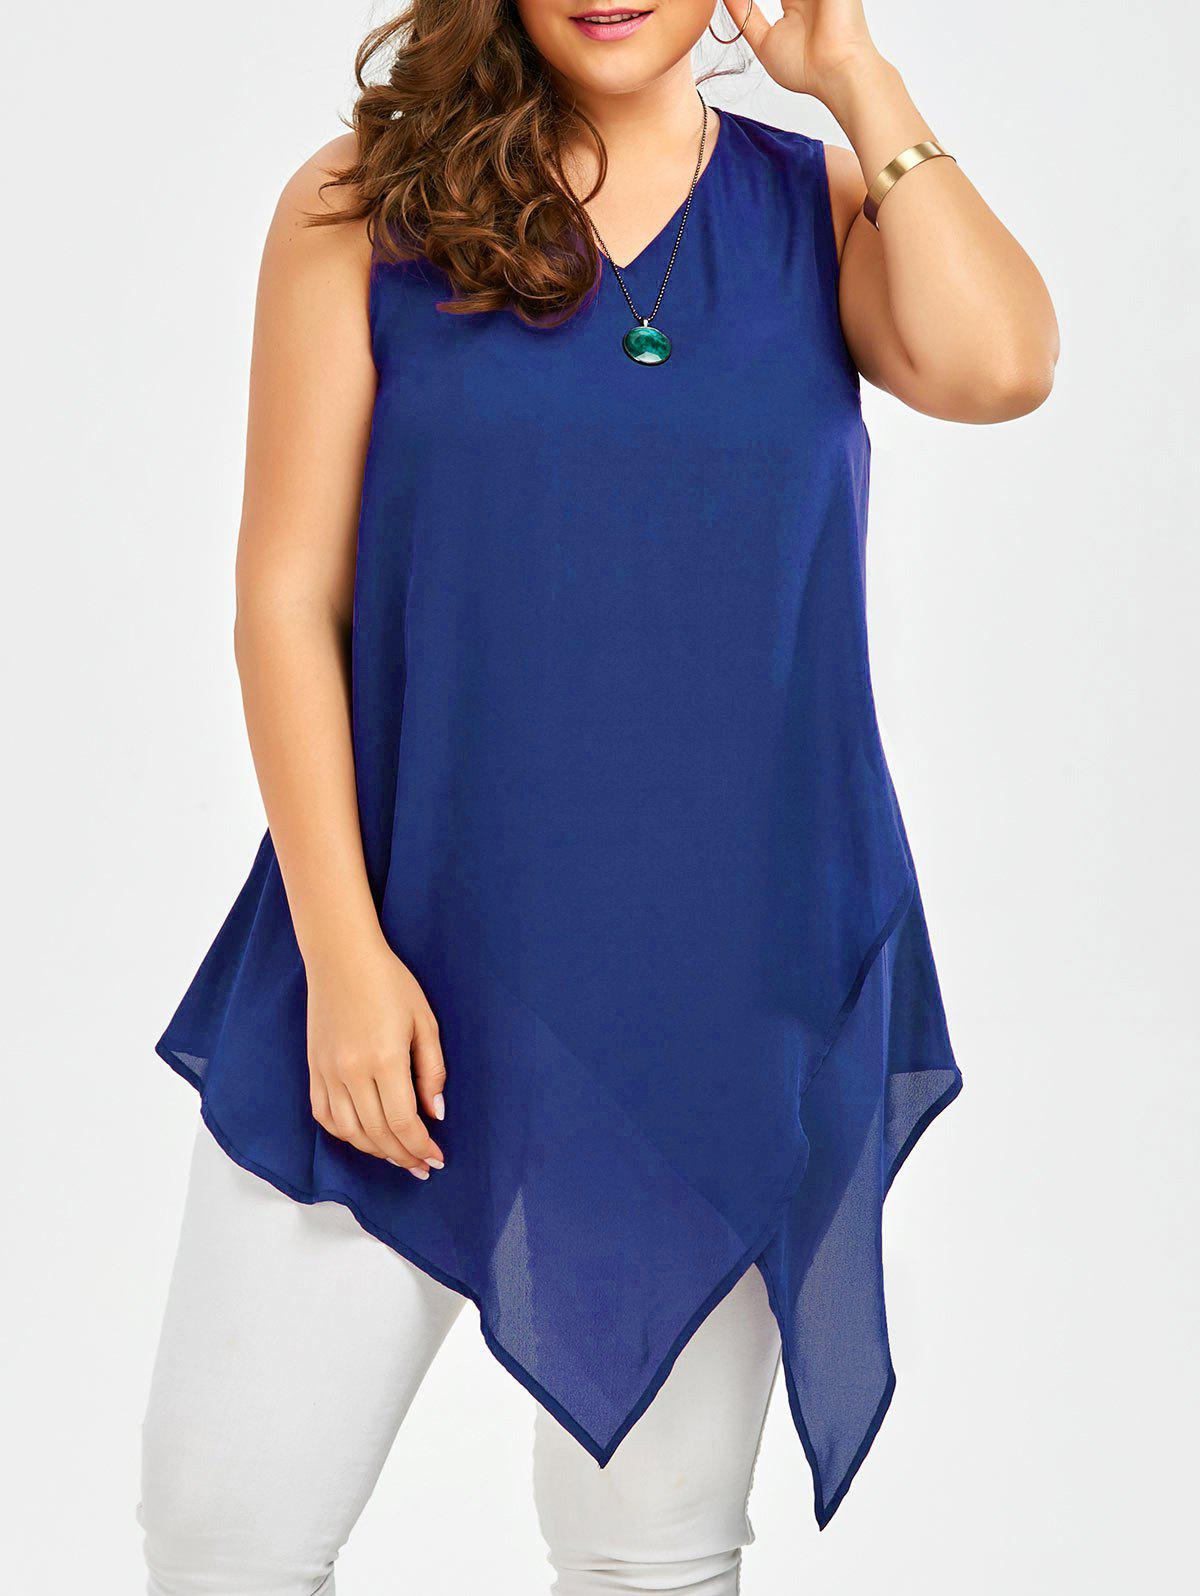 Plus Size Sleeveless V Neck Asymmetric Tank TopWOMEN<br><br>Size: 2XL; Color: BLUE; Material: Polyester; Shirt Length: Long; Sleeve Length: Sleeveless; Collar: V-Neck; Style: Casual; Season: Summer; Pattern Type: Solid; Weight: 0.2500kg; Package Contents: 1 x Tank Top;